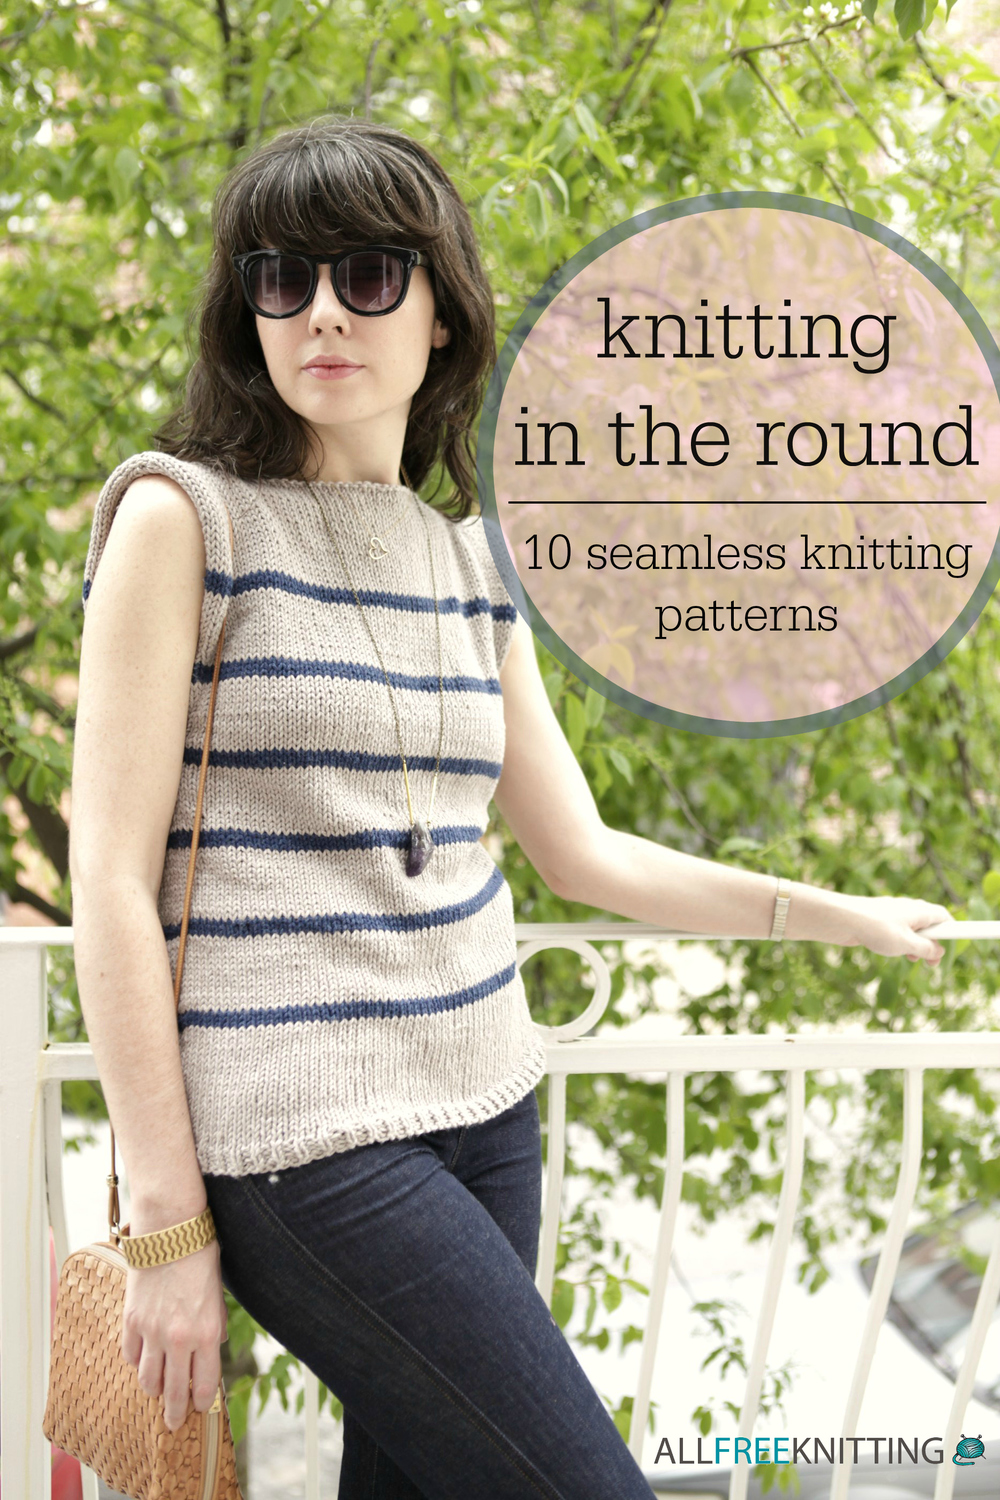 Knitting Patterns For Knitting In The Round : Knitting in the Round: 10 Seamless Knitting Patterns AllFreeKnitting.com